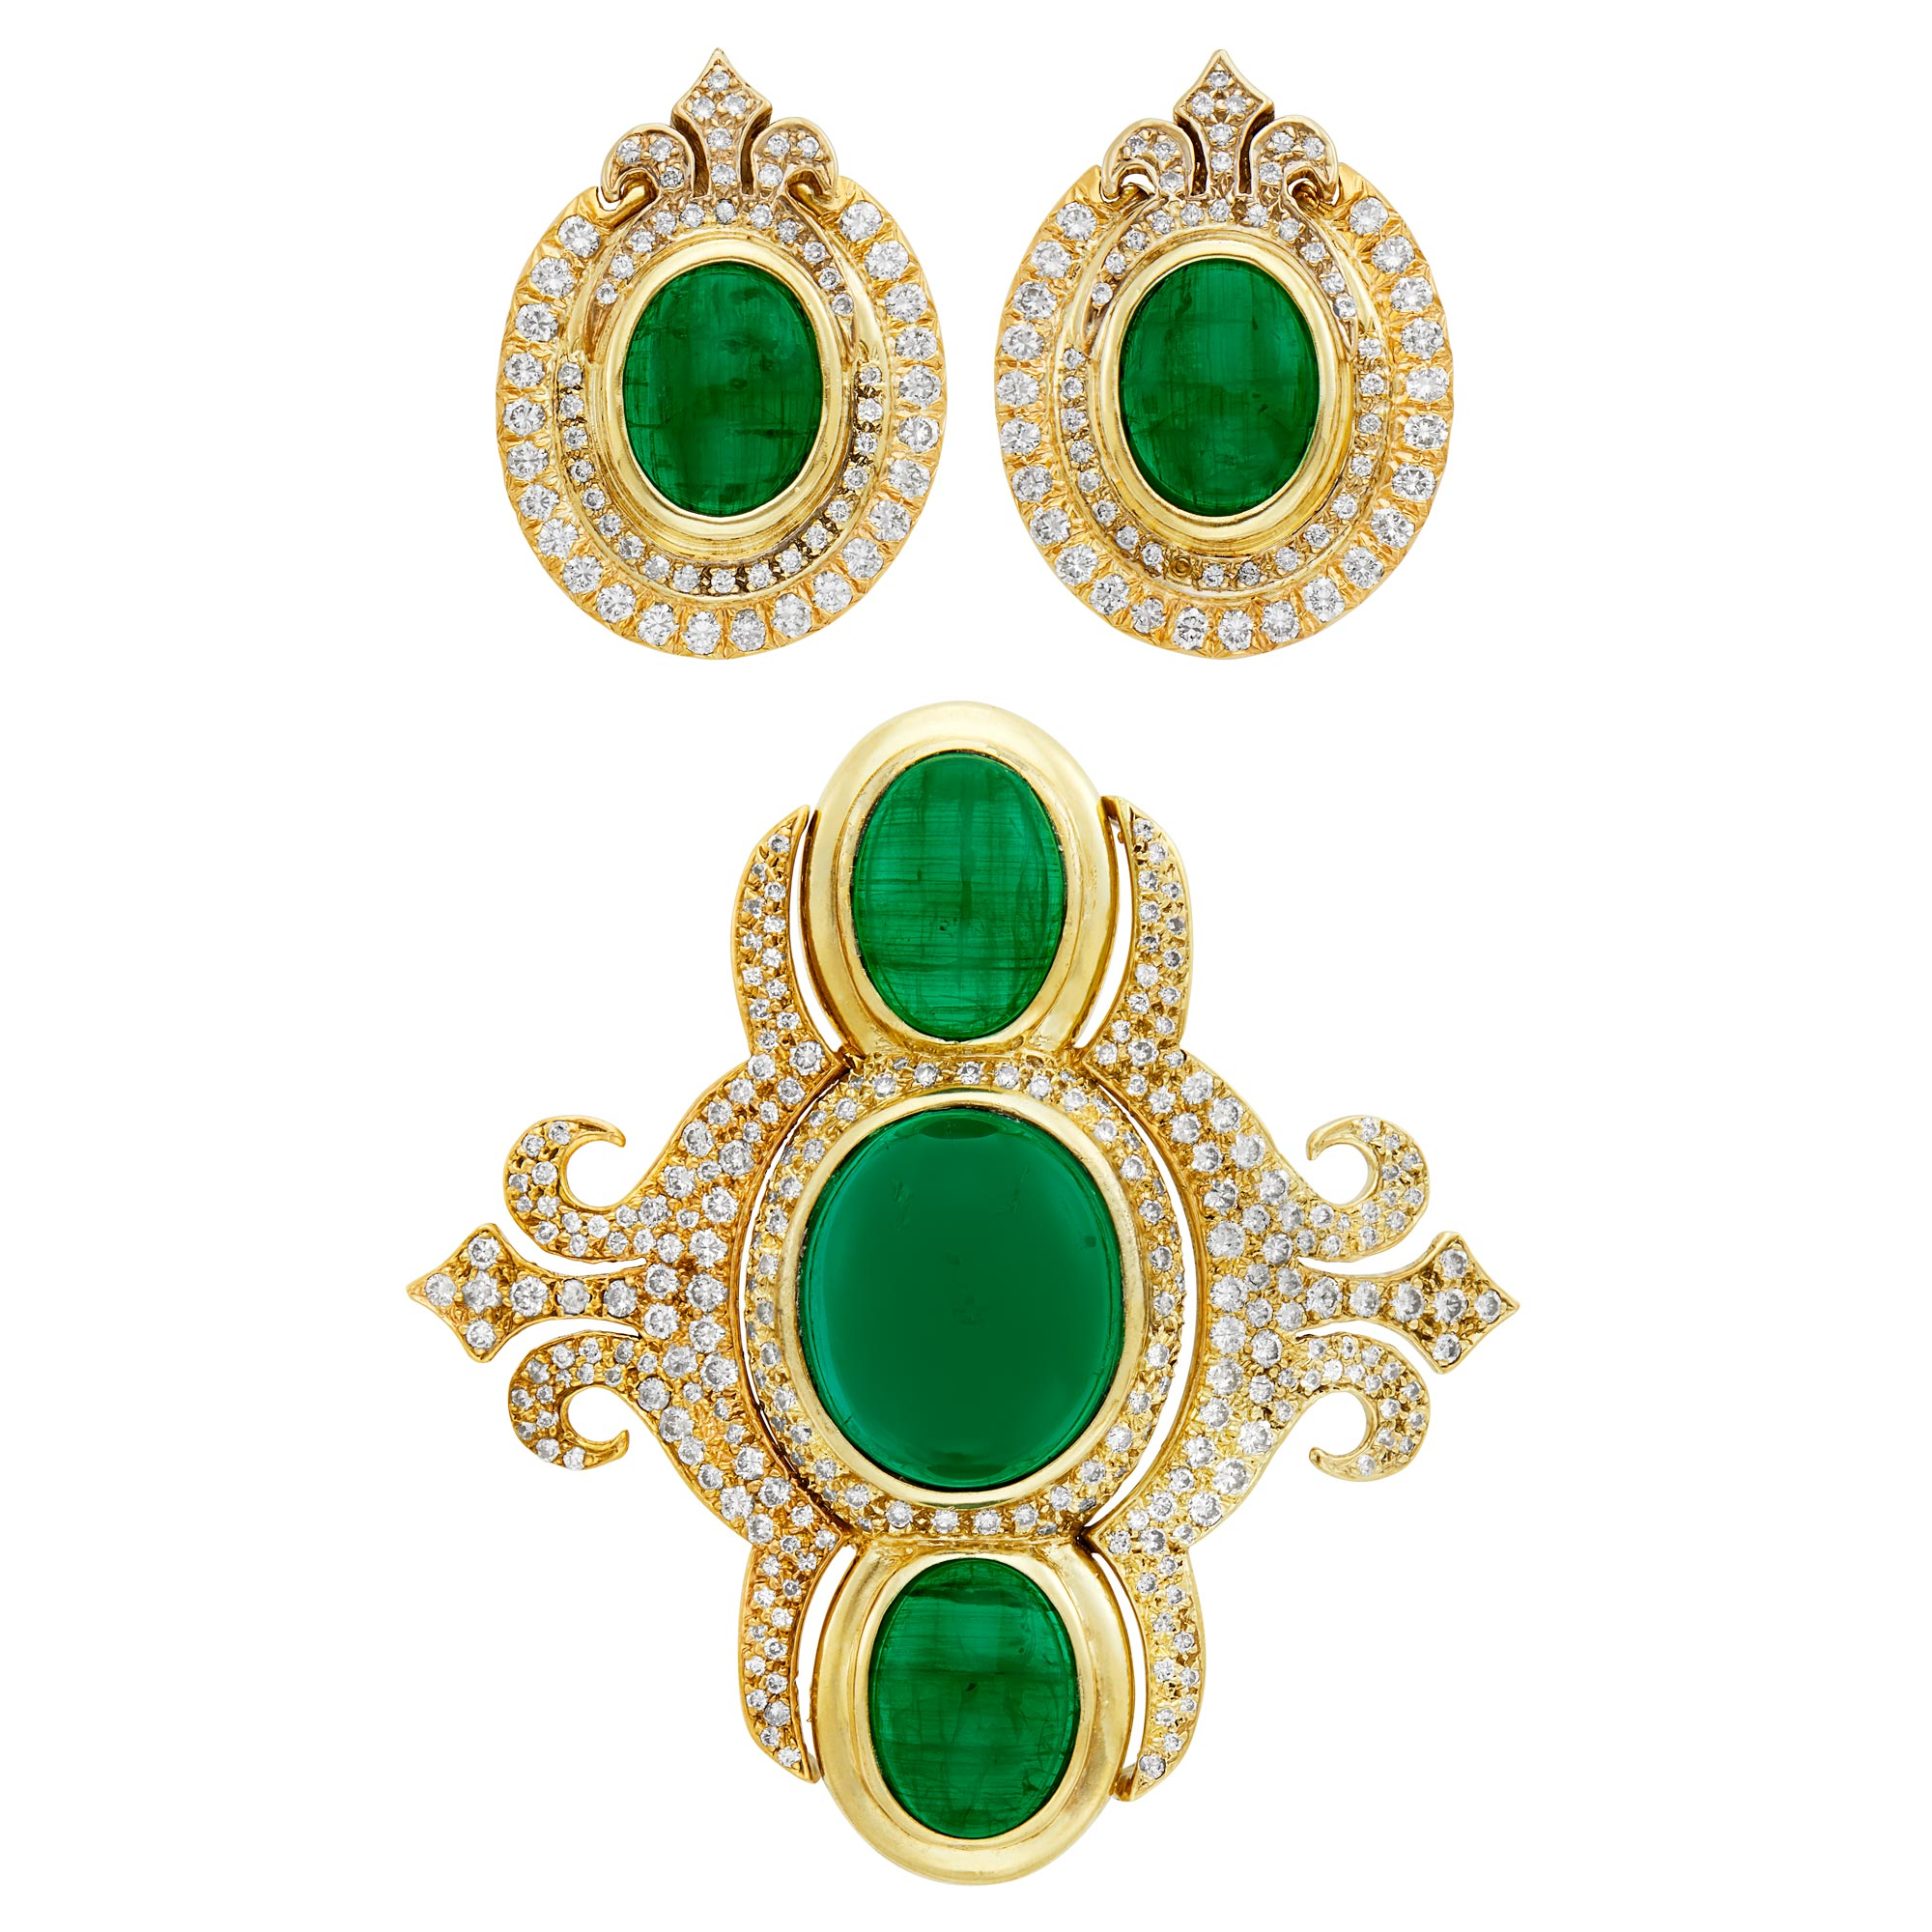 Lot image - Pair of Tricolor Gold, Synthetic Cabochon Emerald and Diamond Earclips and Brooch